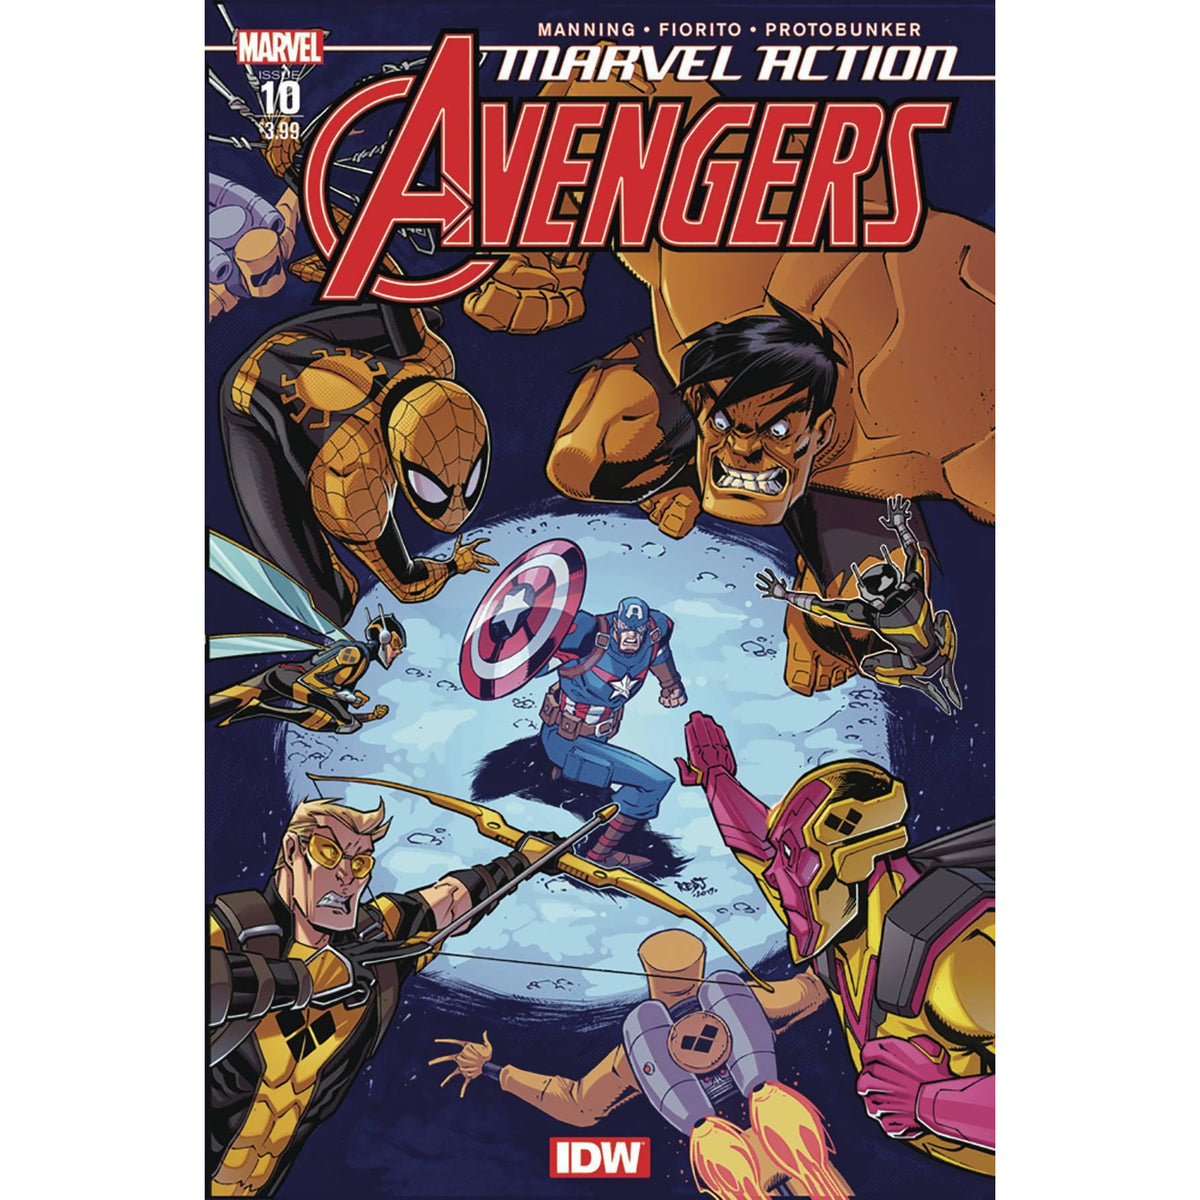 MARVEL ACTION AVENGERS #10 2ND PRINTING